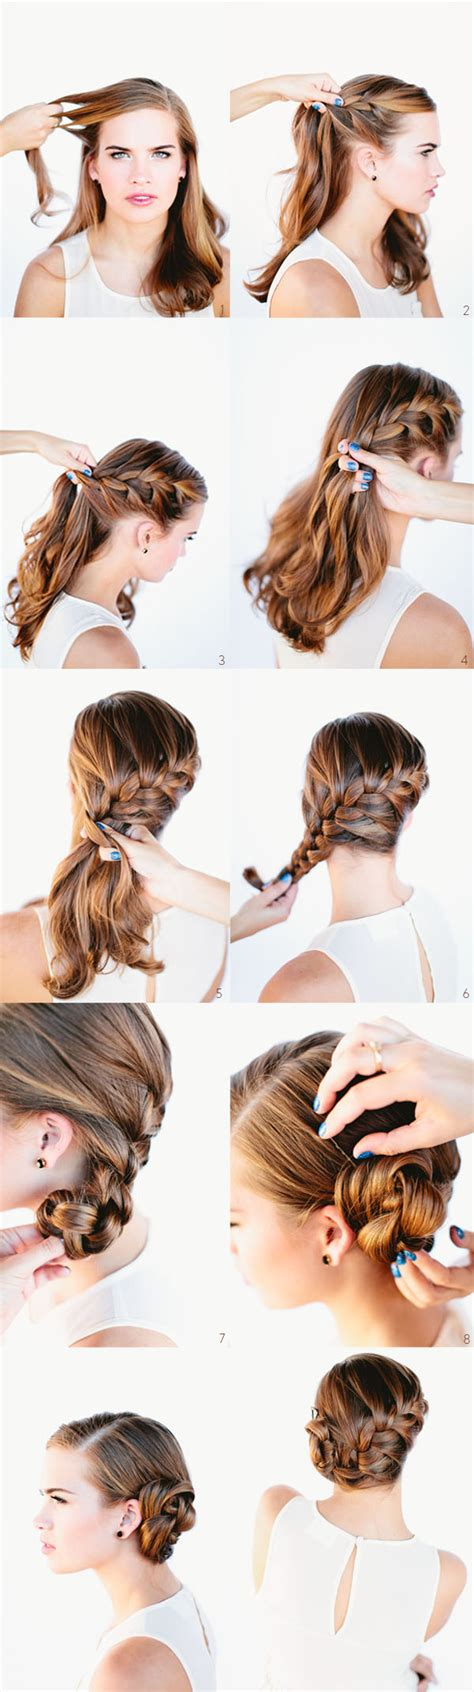 diy hairstyles com 101 easy diy hairstyles for medium and long hair to snatch